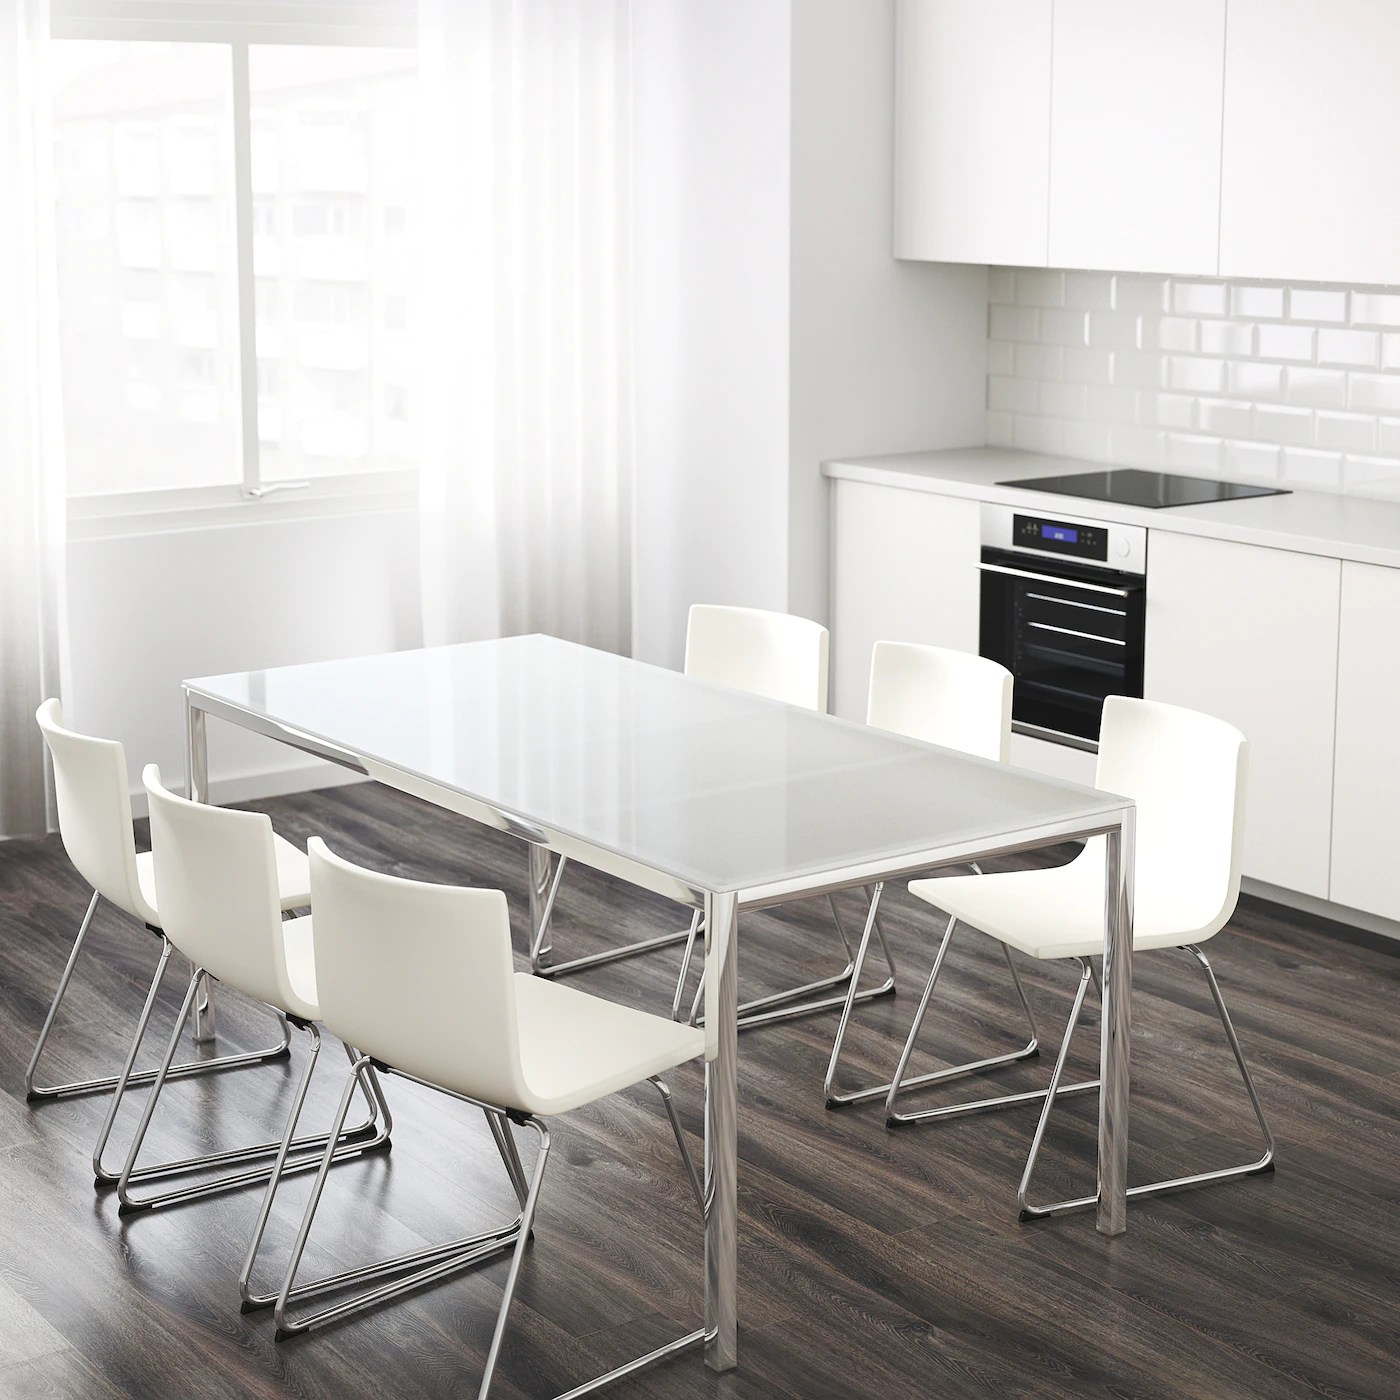 torsby table chrome plated glass white 180x85 cm